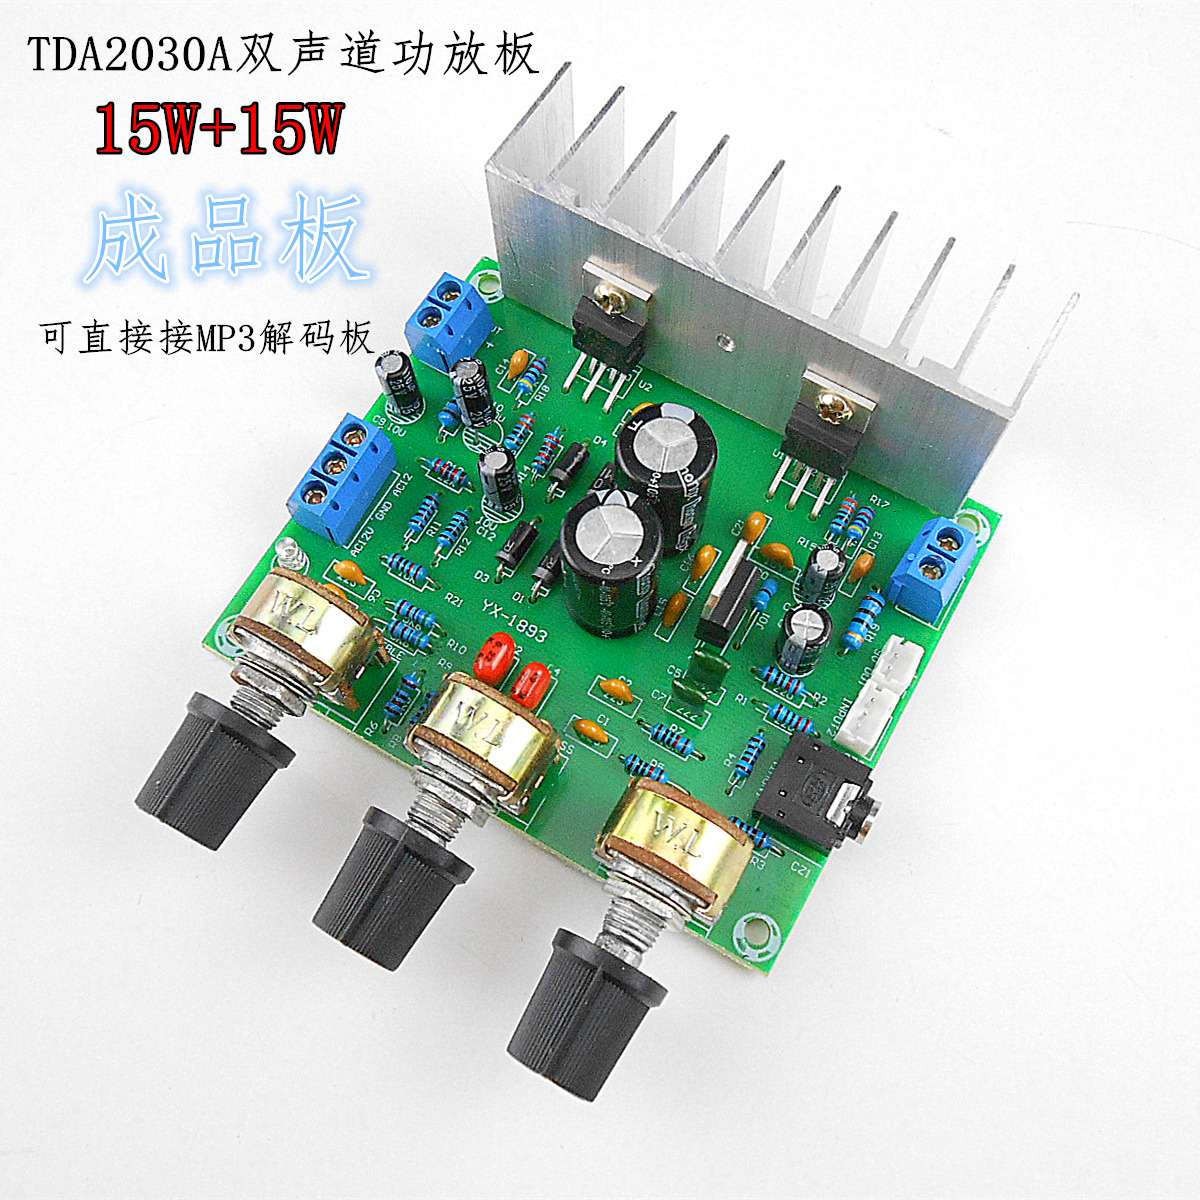 TDA2030 A Finished Product Power Amplifier Board HIFI 2.0  2-channel 15W+15W Compatible LM1875 купить